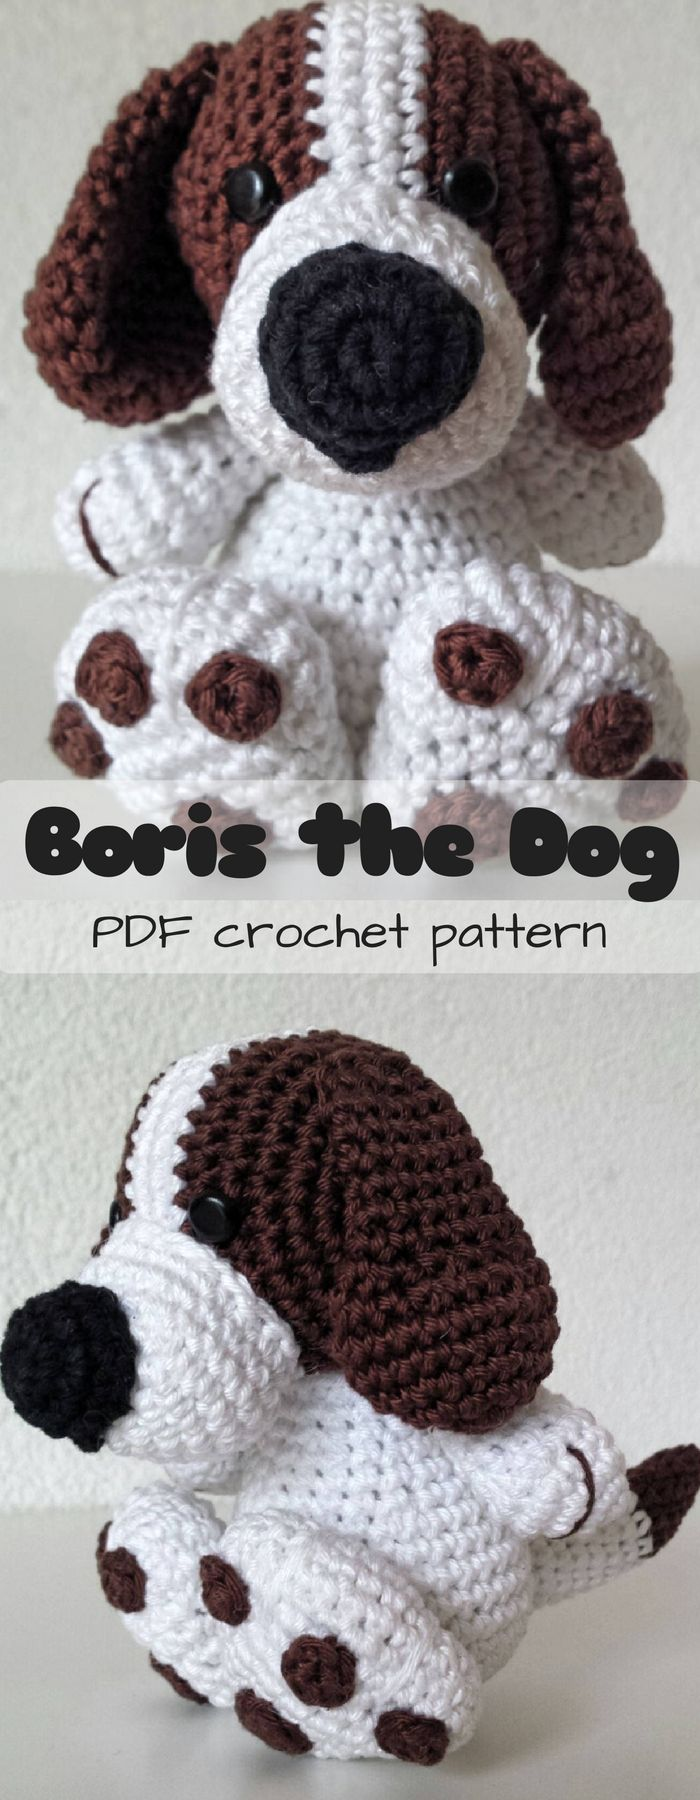 369 best crochet images on Pinterest | Crochet dolls, Crochet granny ...